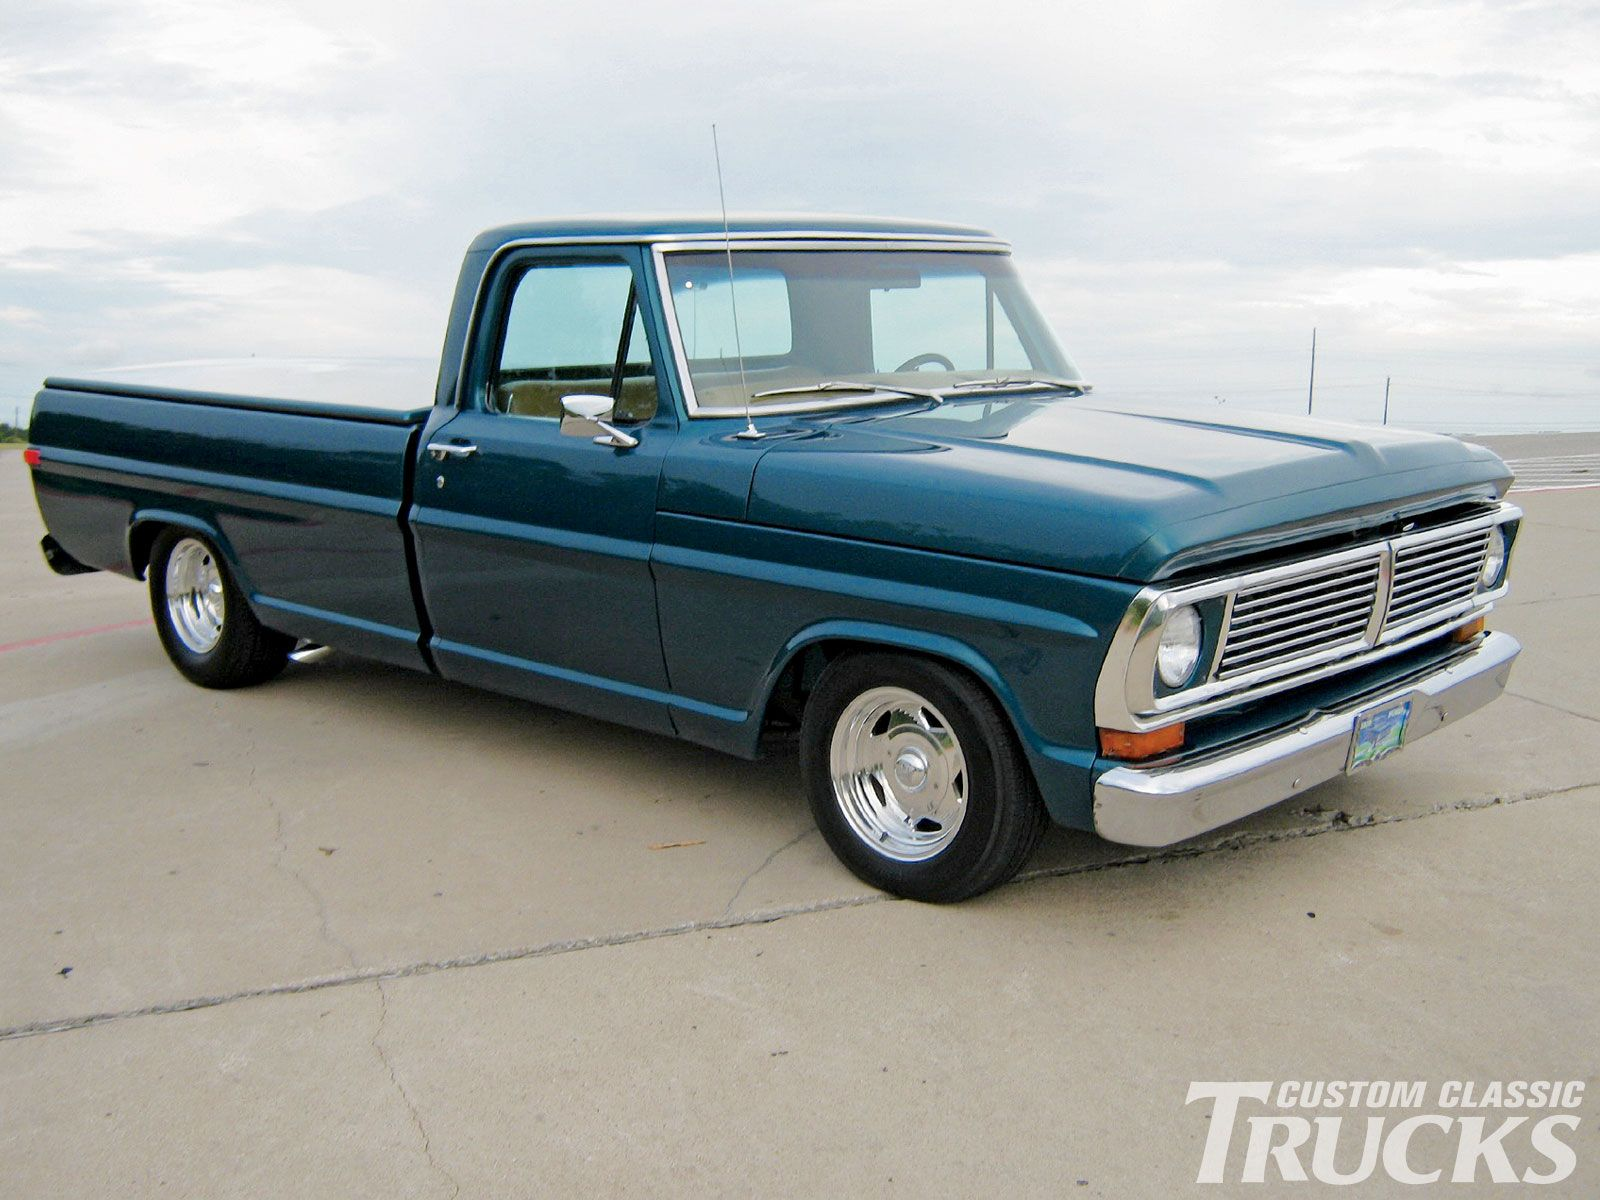 1956 ford f100 big window section for sale autos post for 1956 f100 big window for sale